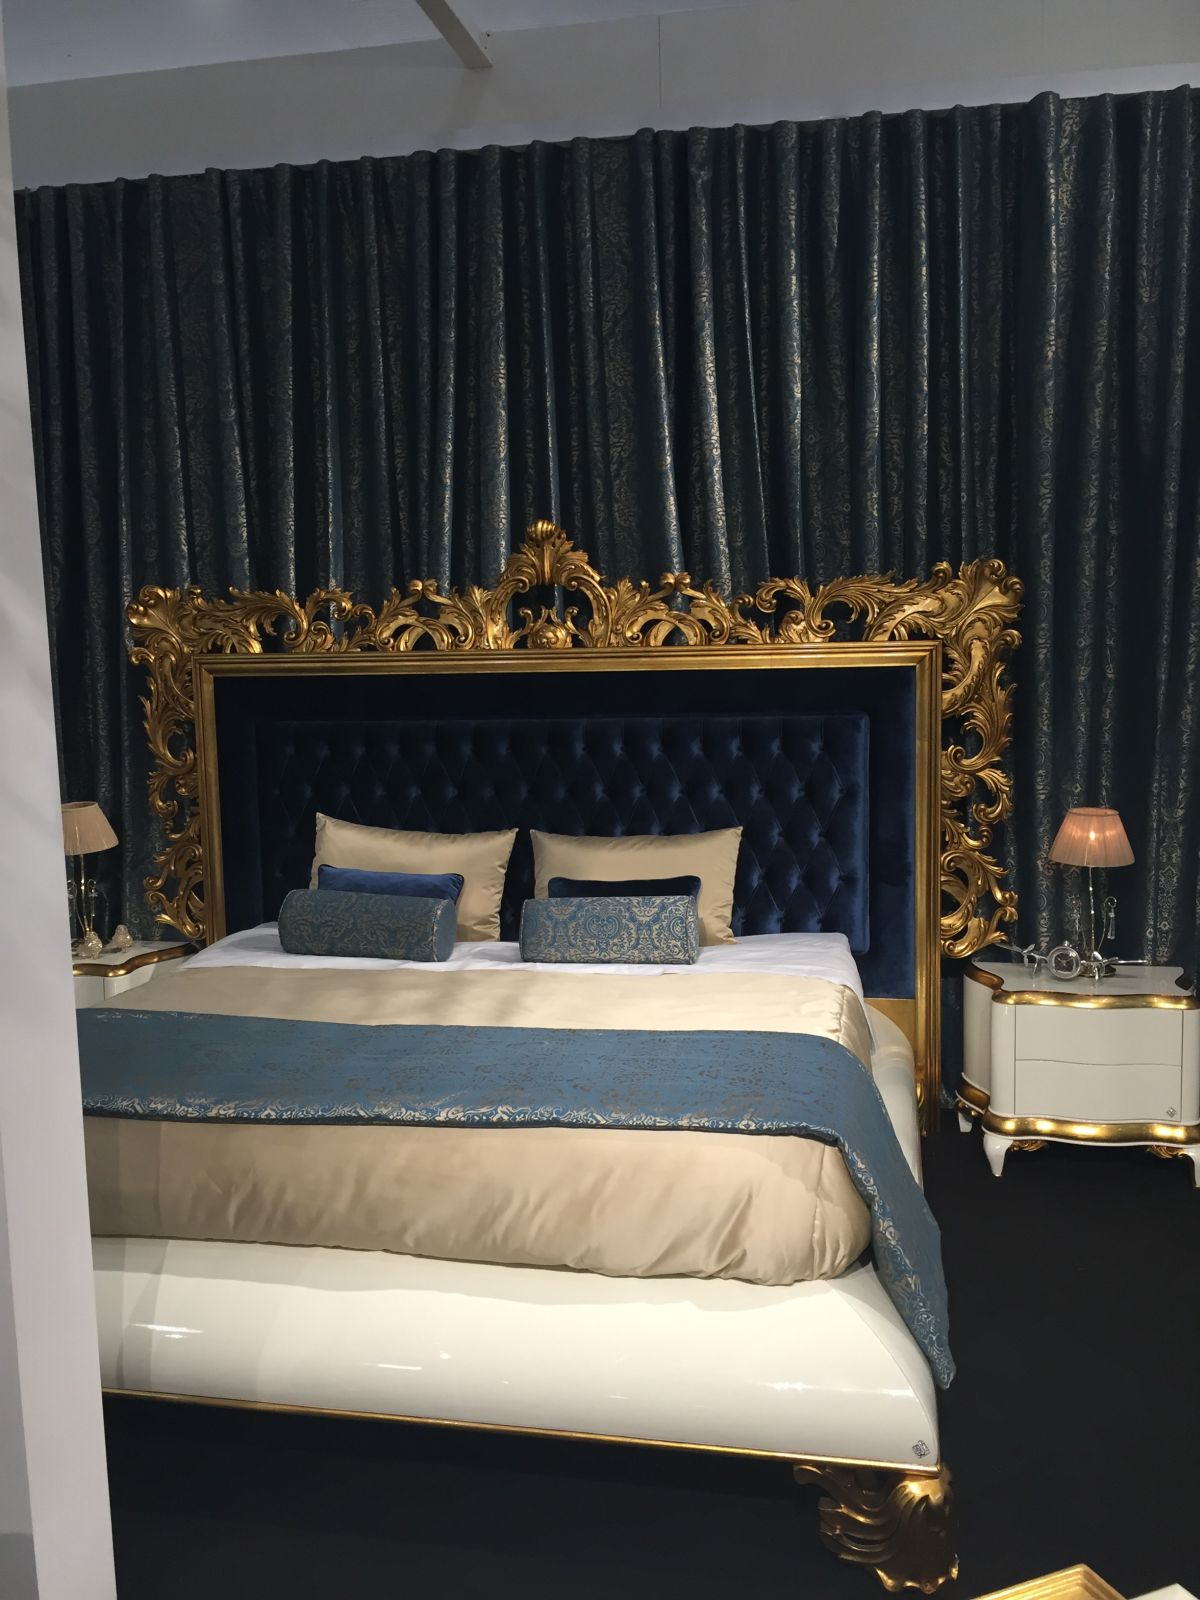 Opulent gold framing bedroom